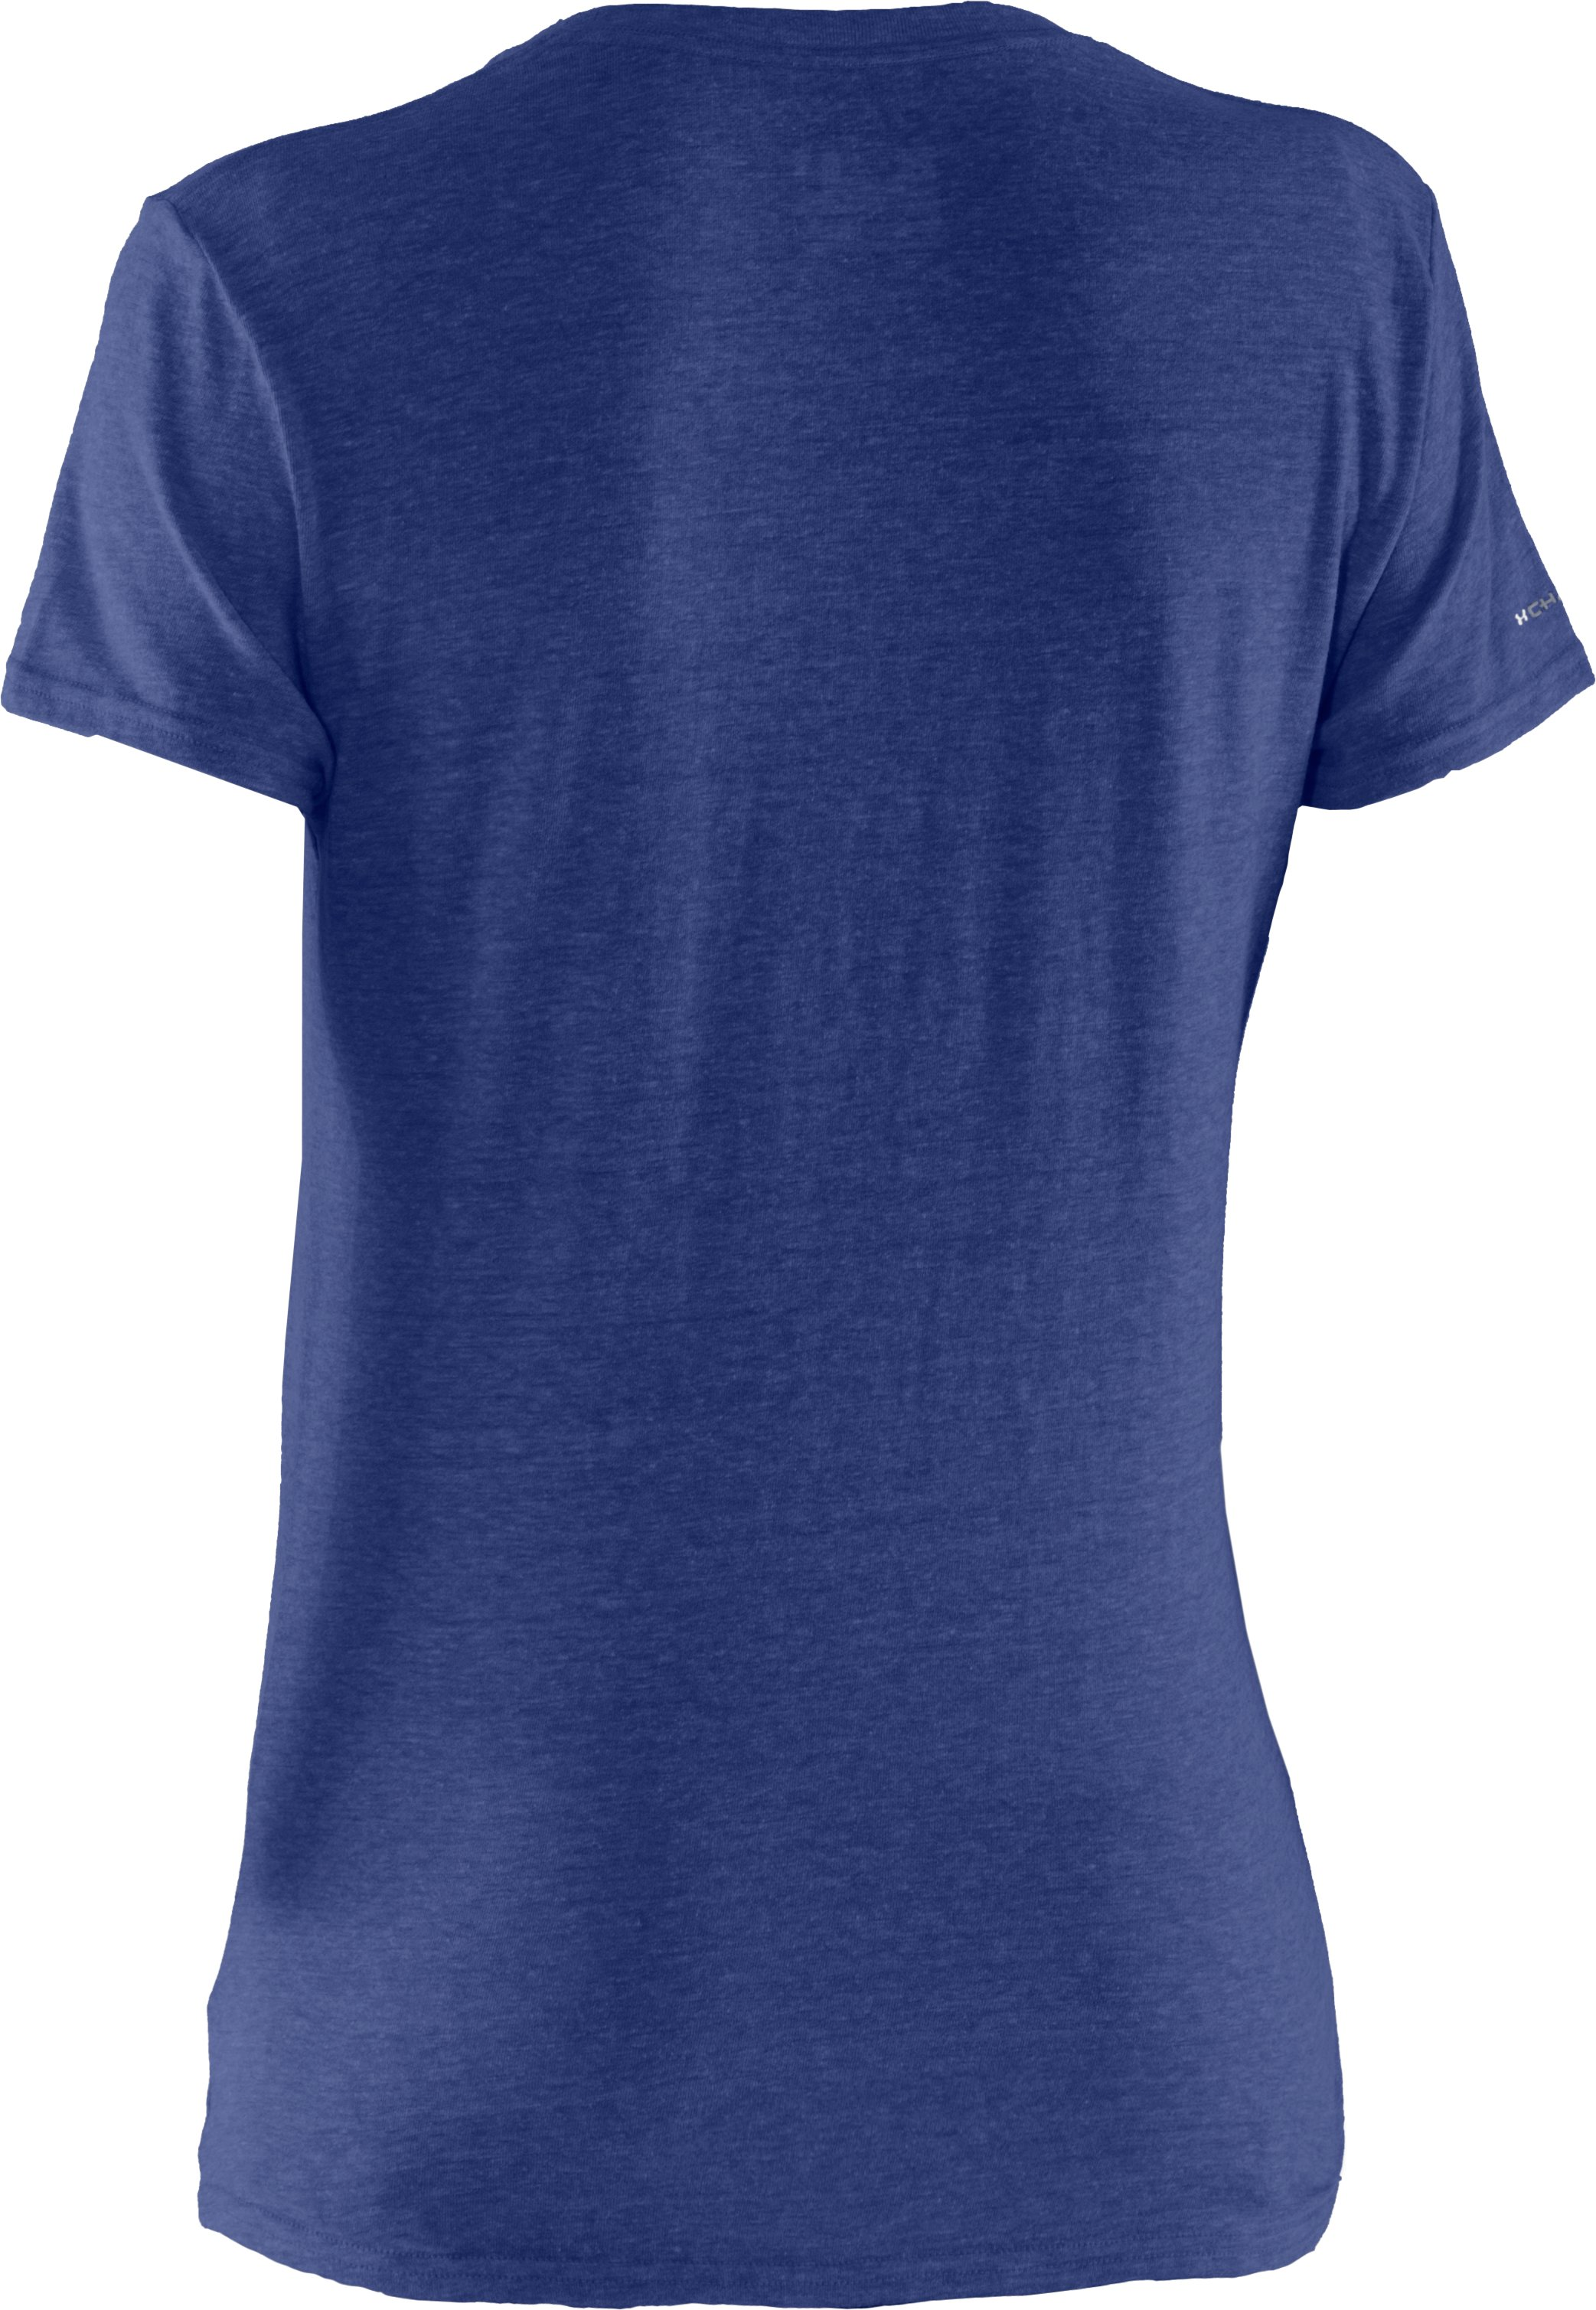 Women's Charged Cotton® Undeniable T-Shirt, BLU-AWAY